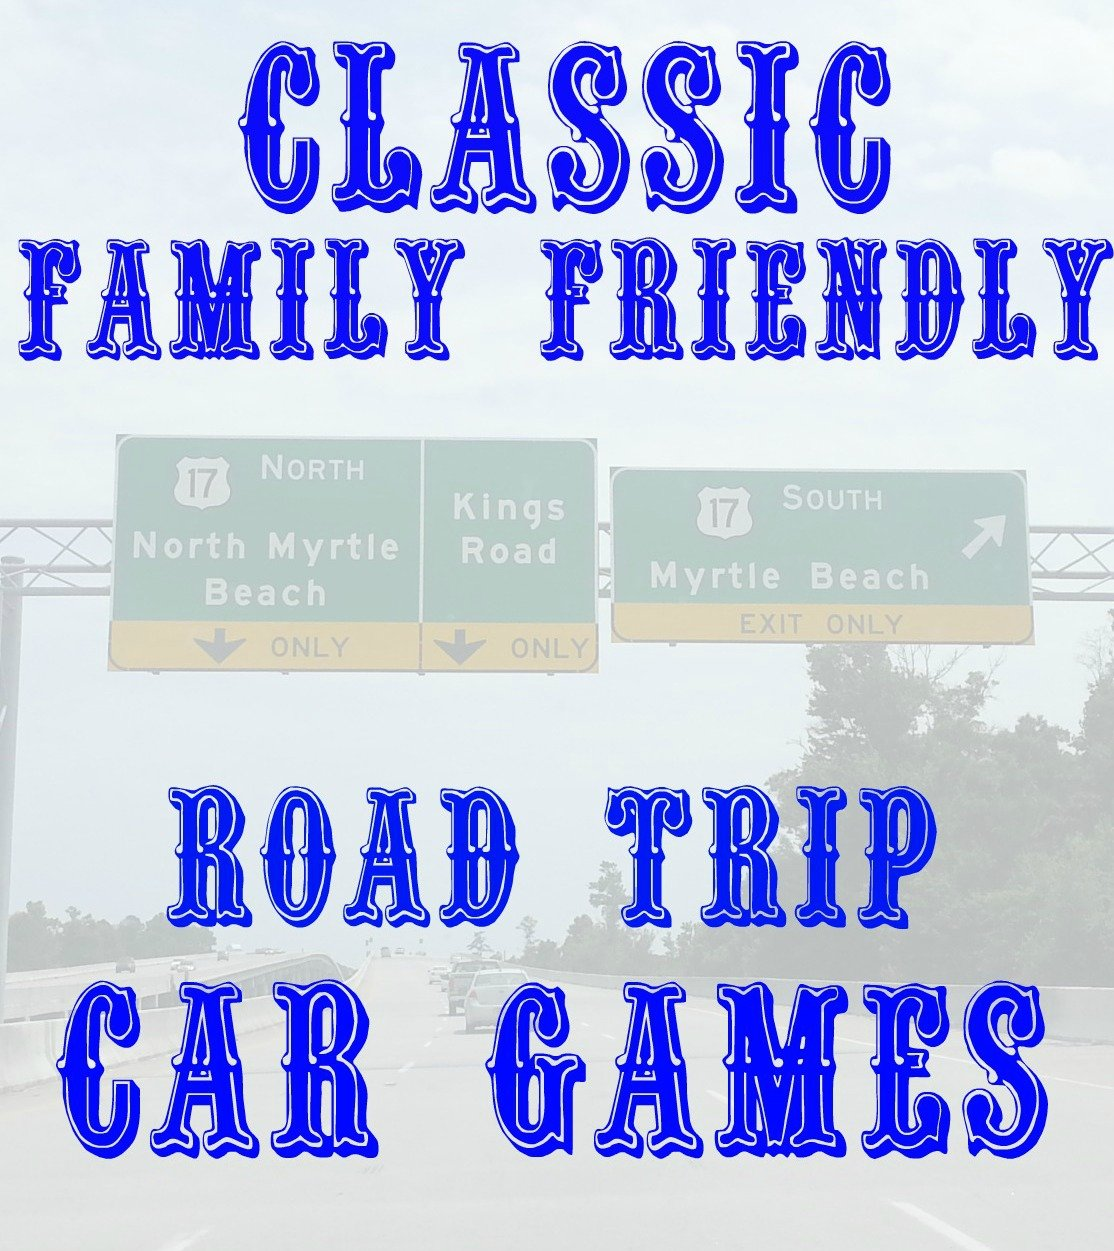 Classic Family Friendly Road Trip Car Games to make the ride more enjoyable